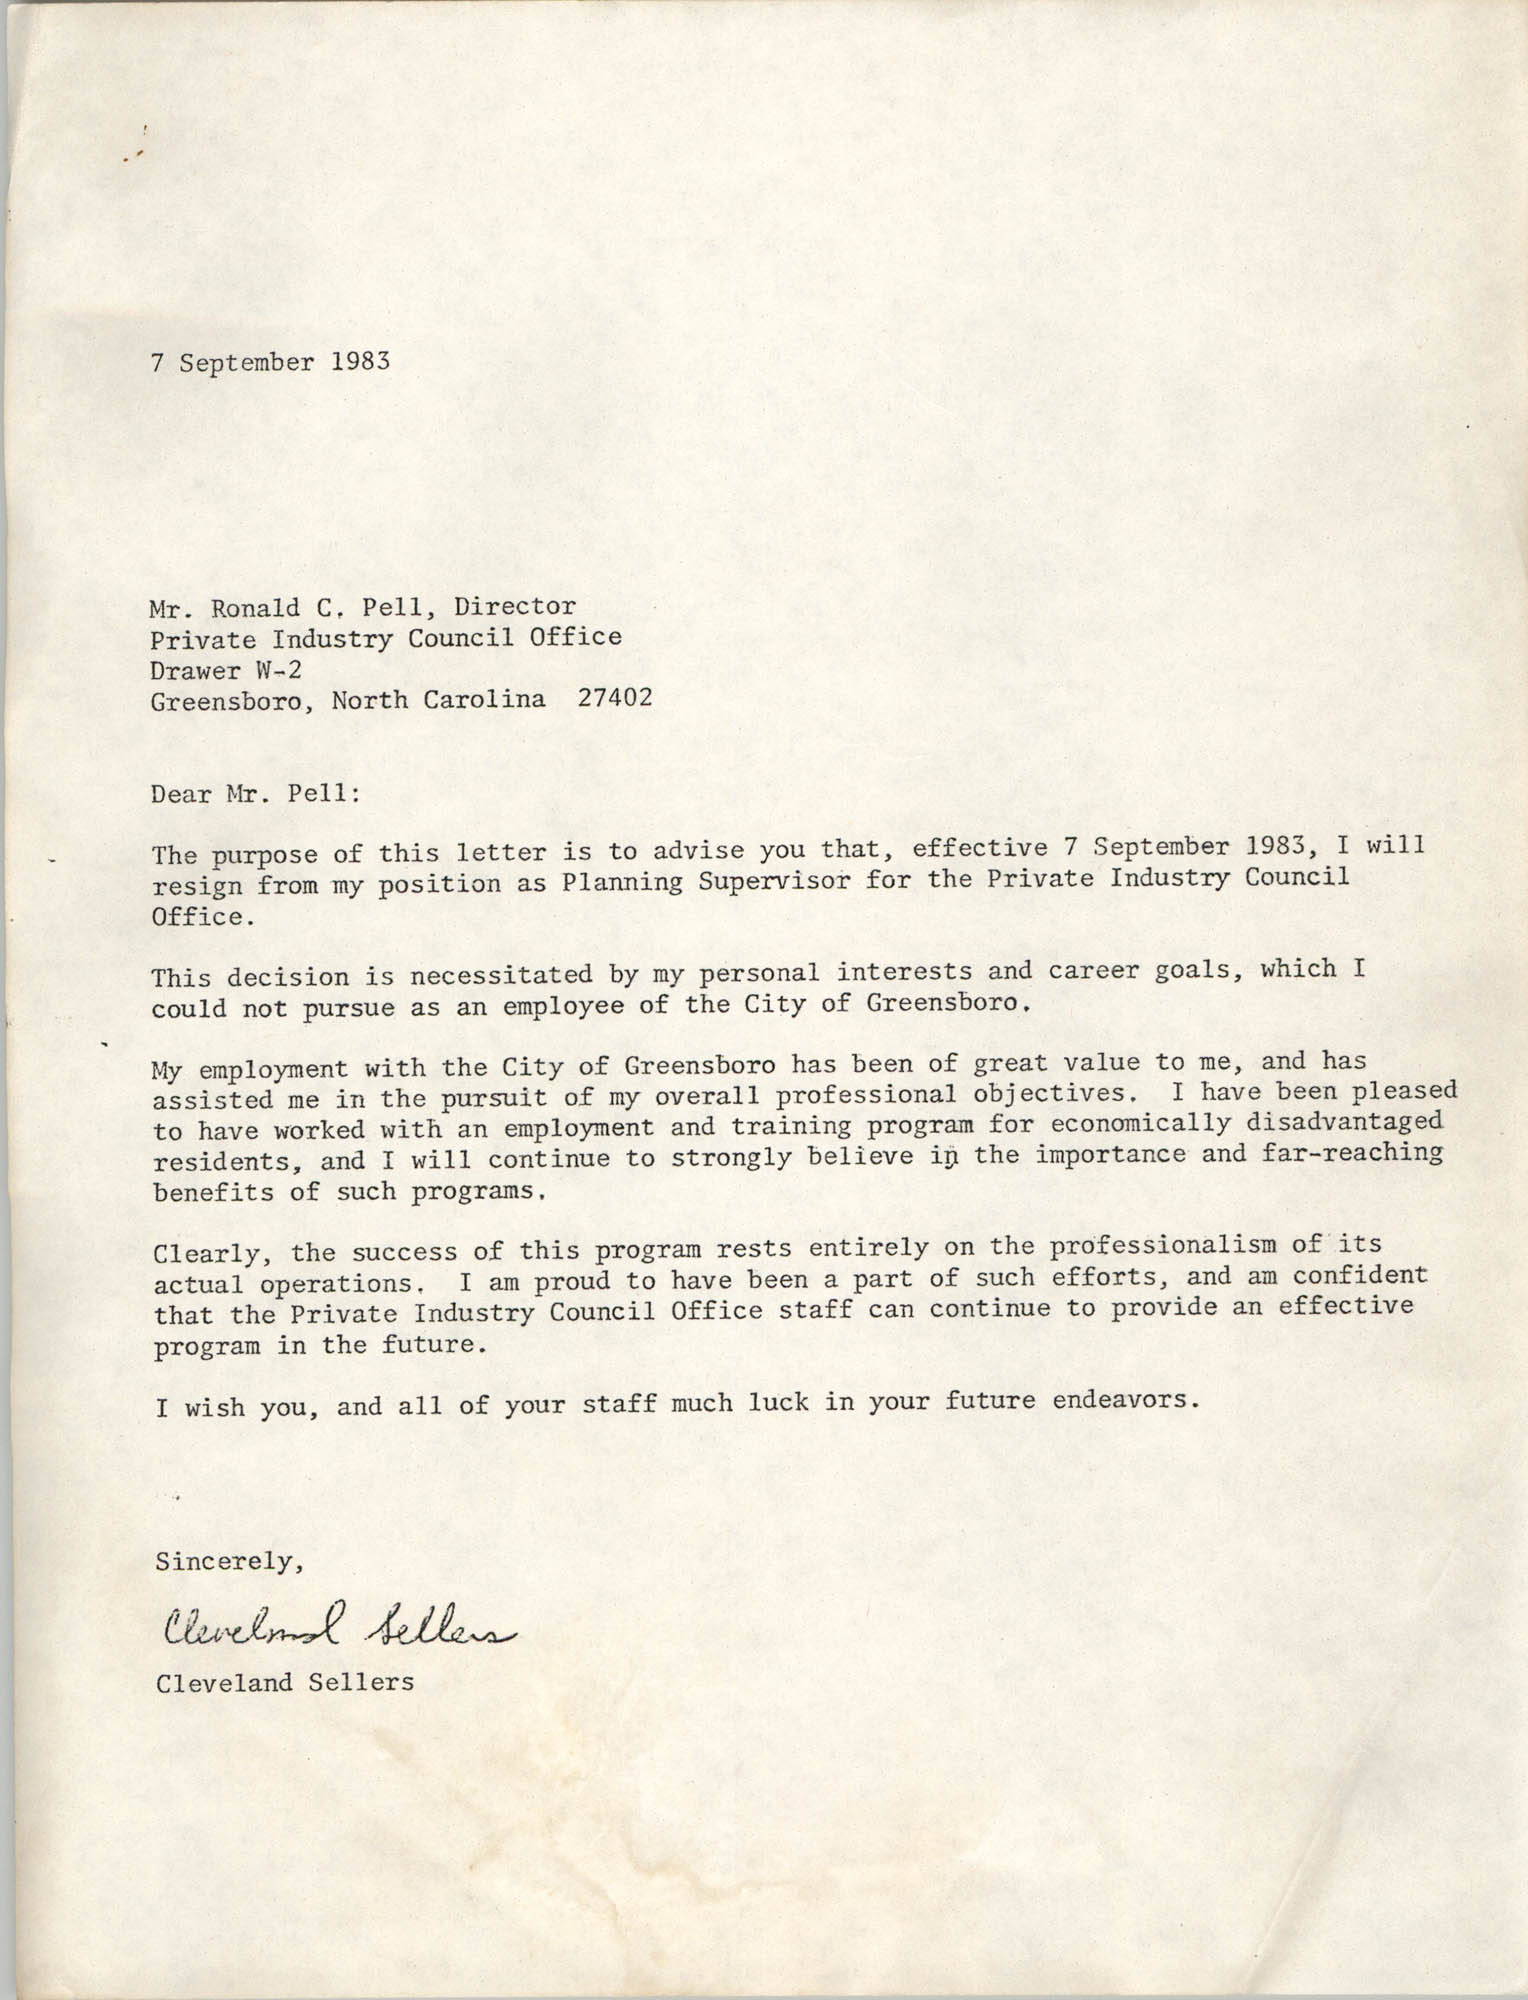 Letter from Cleveland Sellers to Ronald C. Pell, September 7, 1983